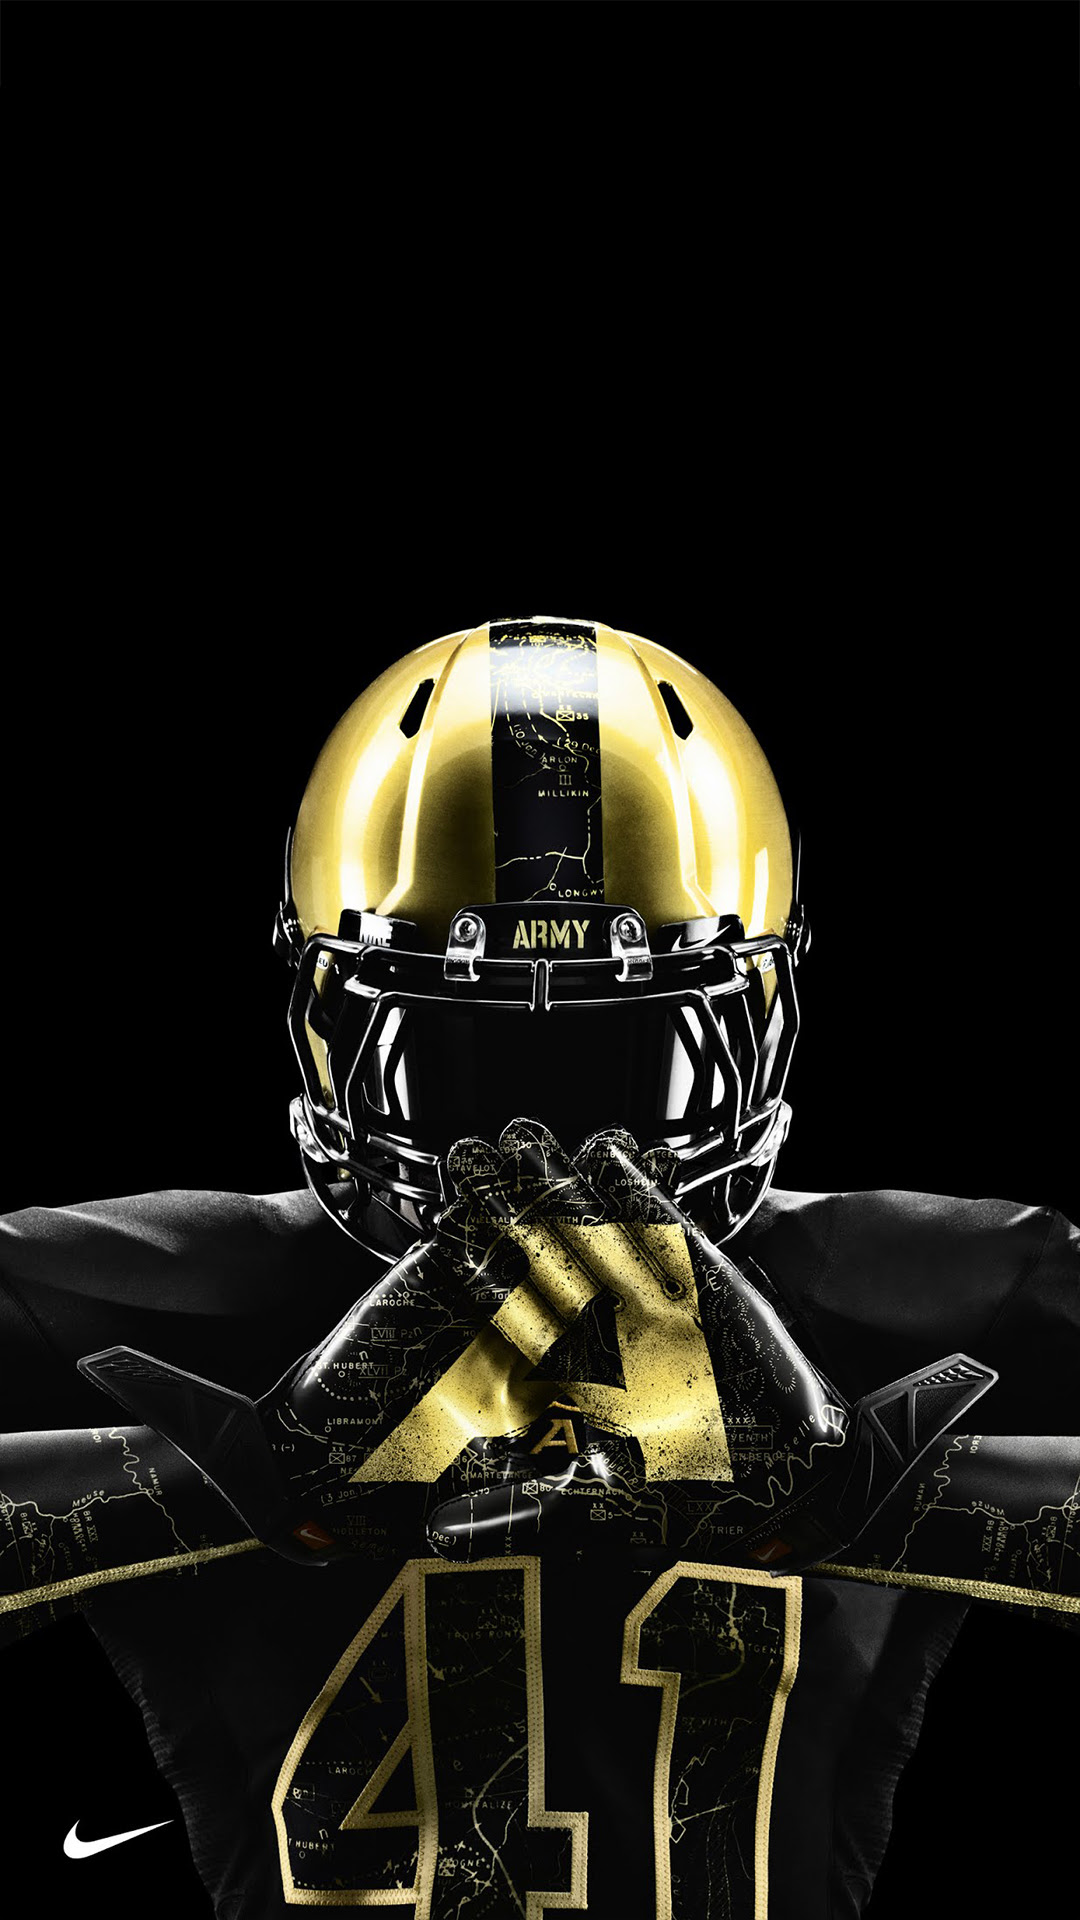 Army nike gloves htc one wallpaper  Best htc one wallpapers, free and easy to download